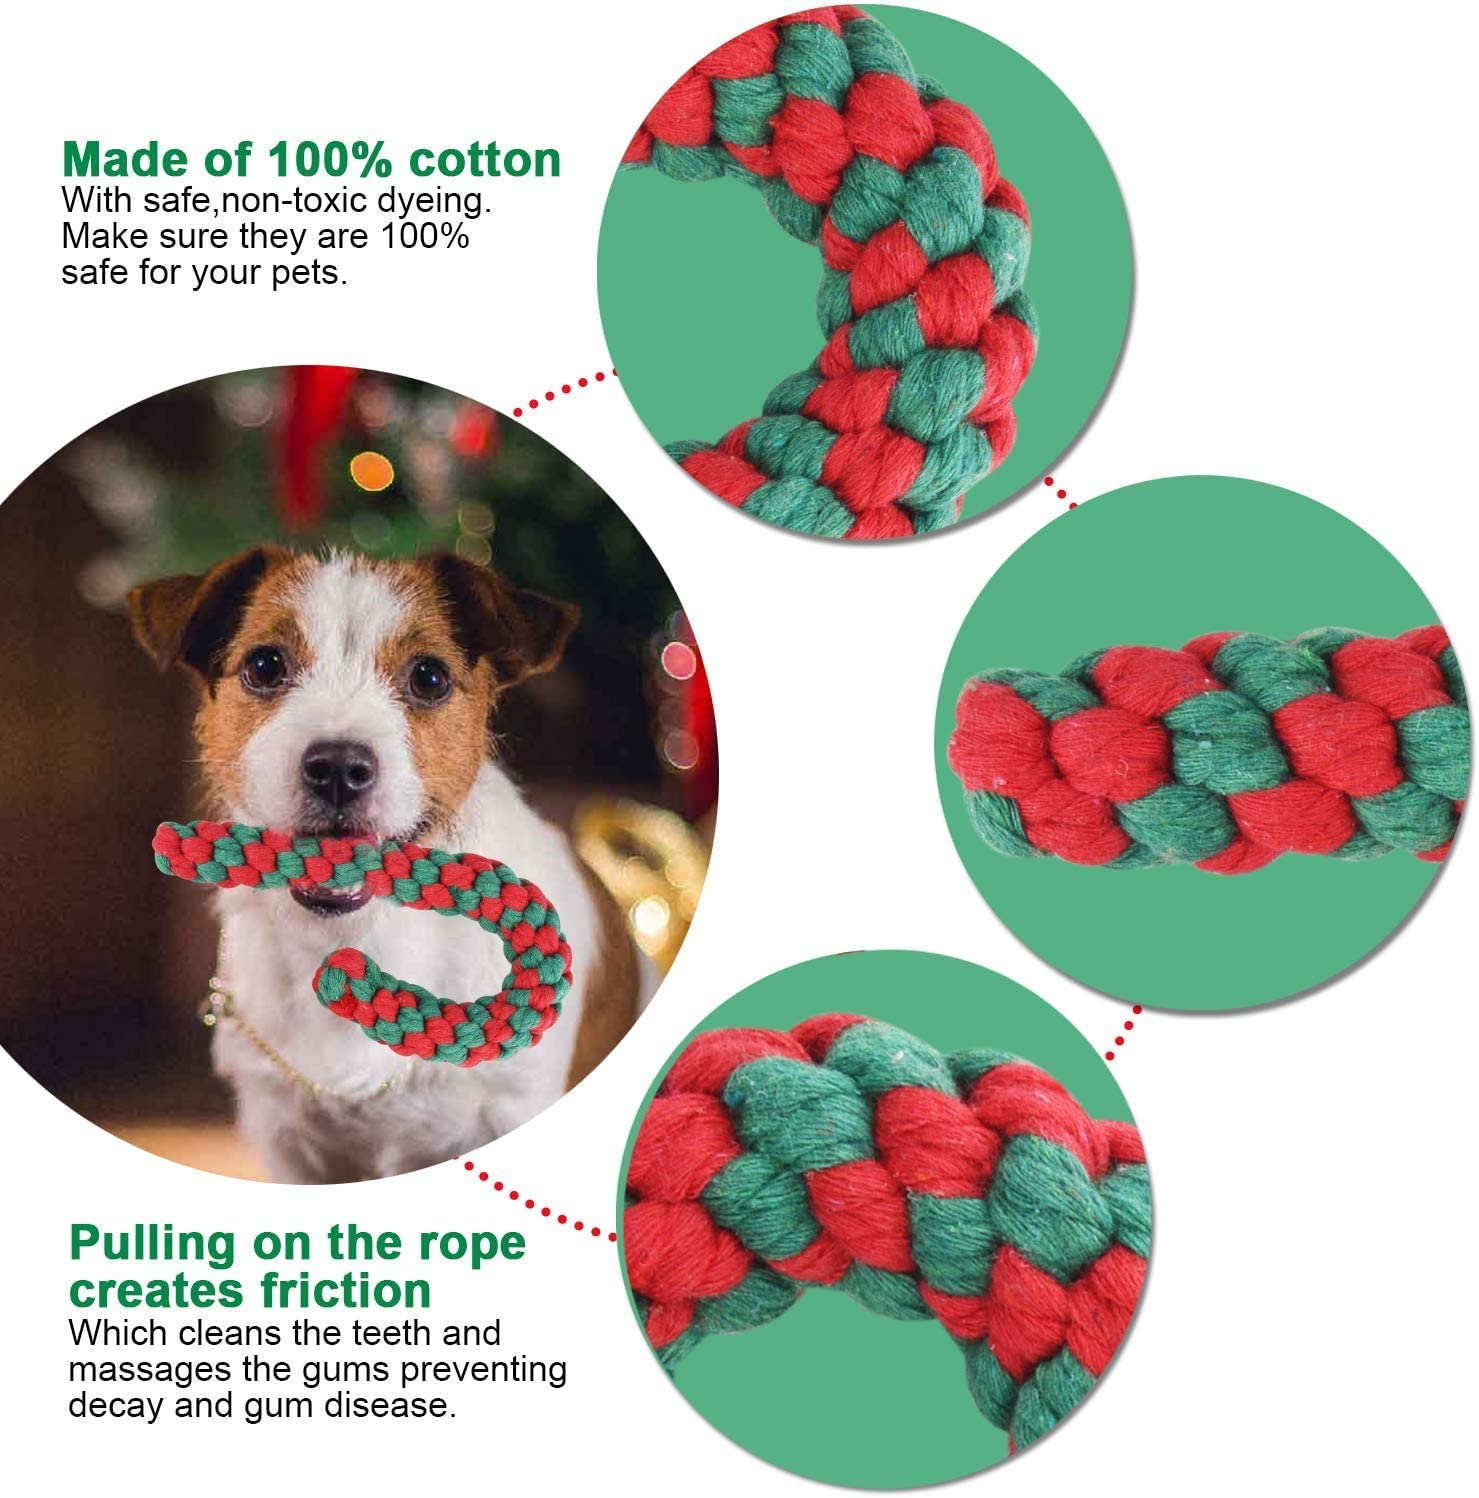 Christmas Dog Cotton Rope Toy Candy Cane Dog Toy Christmas Stocking Toys for Puppy Dogs Teething Cleaning and Training MAIAGO 2 Pack Christmas Dog Toy Set